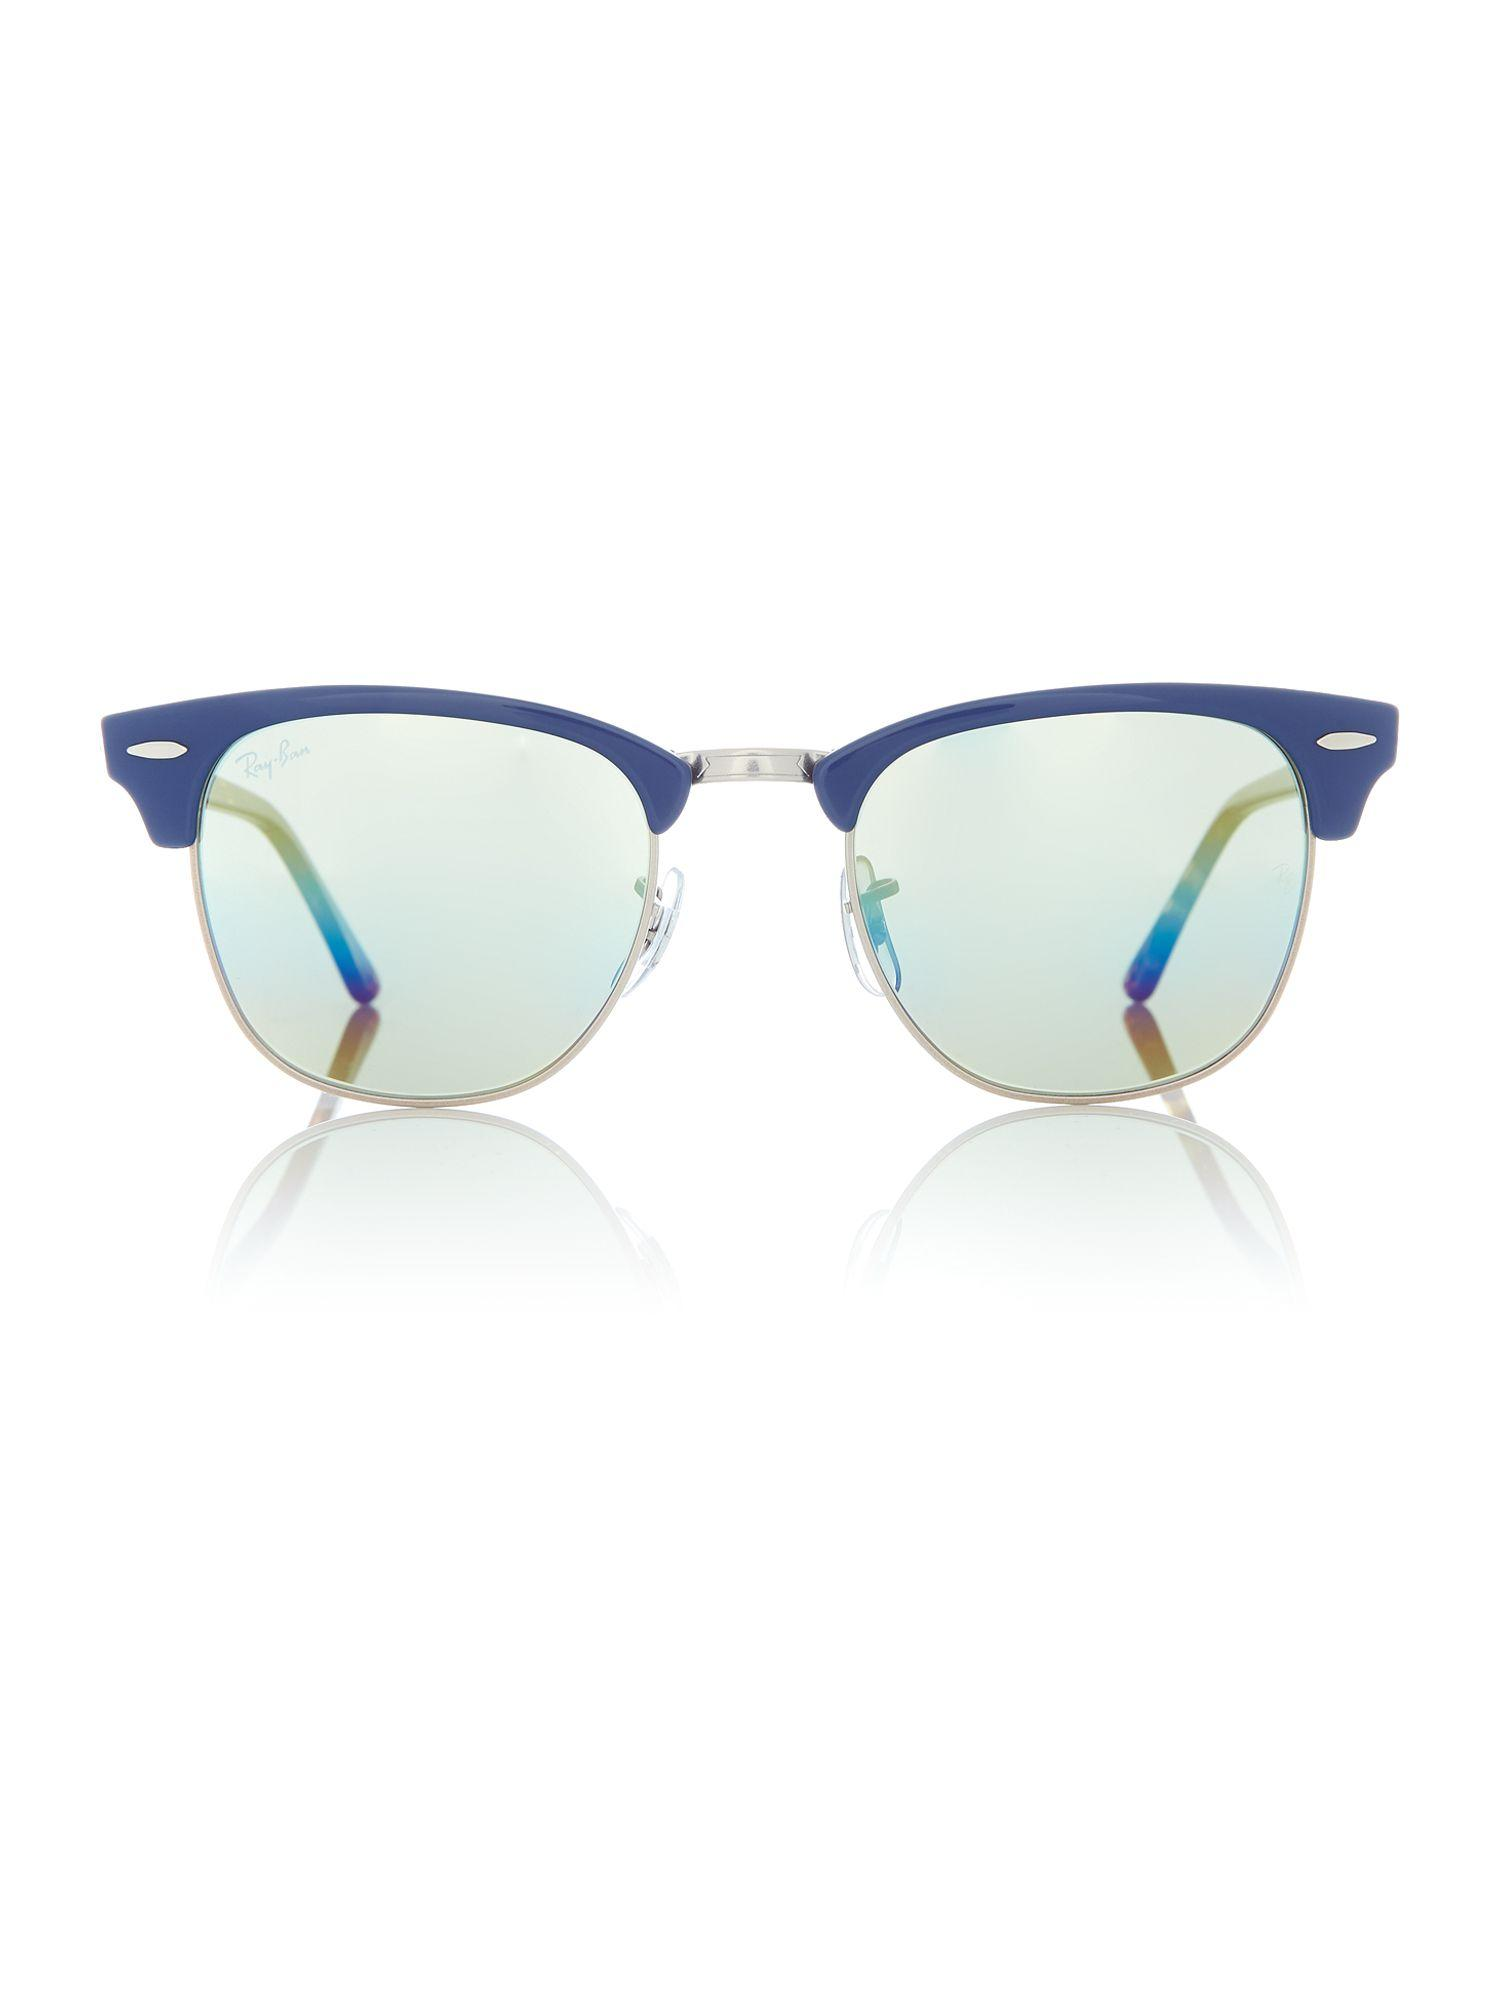 Ray-Ban Bronze Rb3016 Clubmaster Sunglasses in Blue for Men